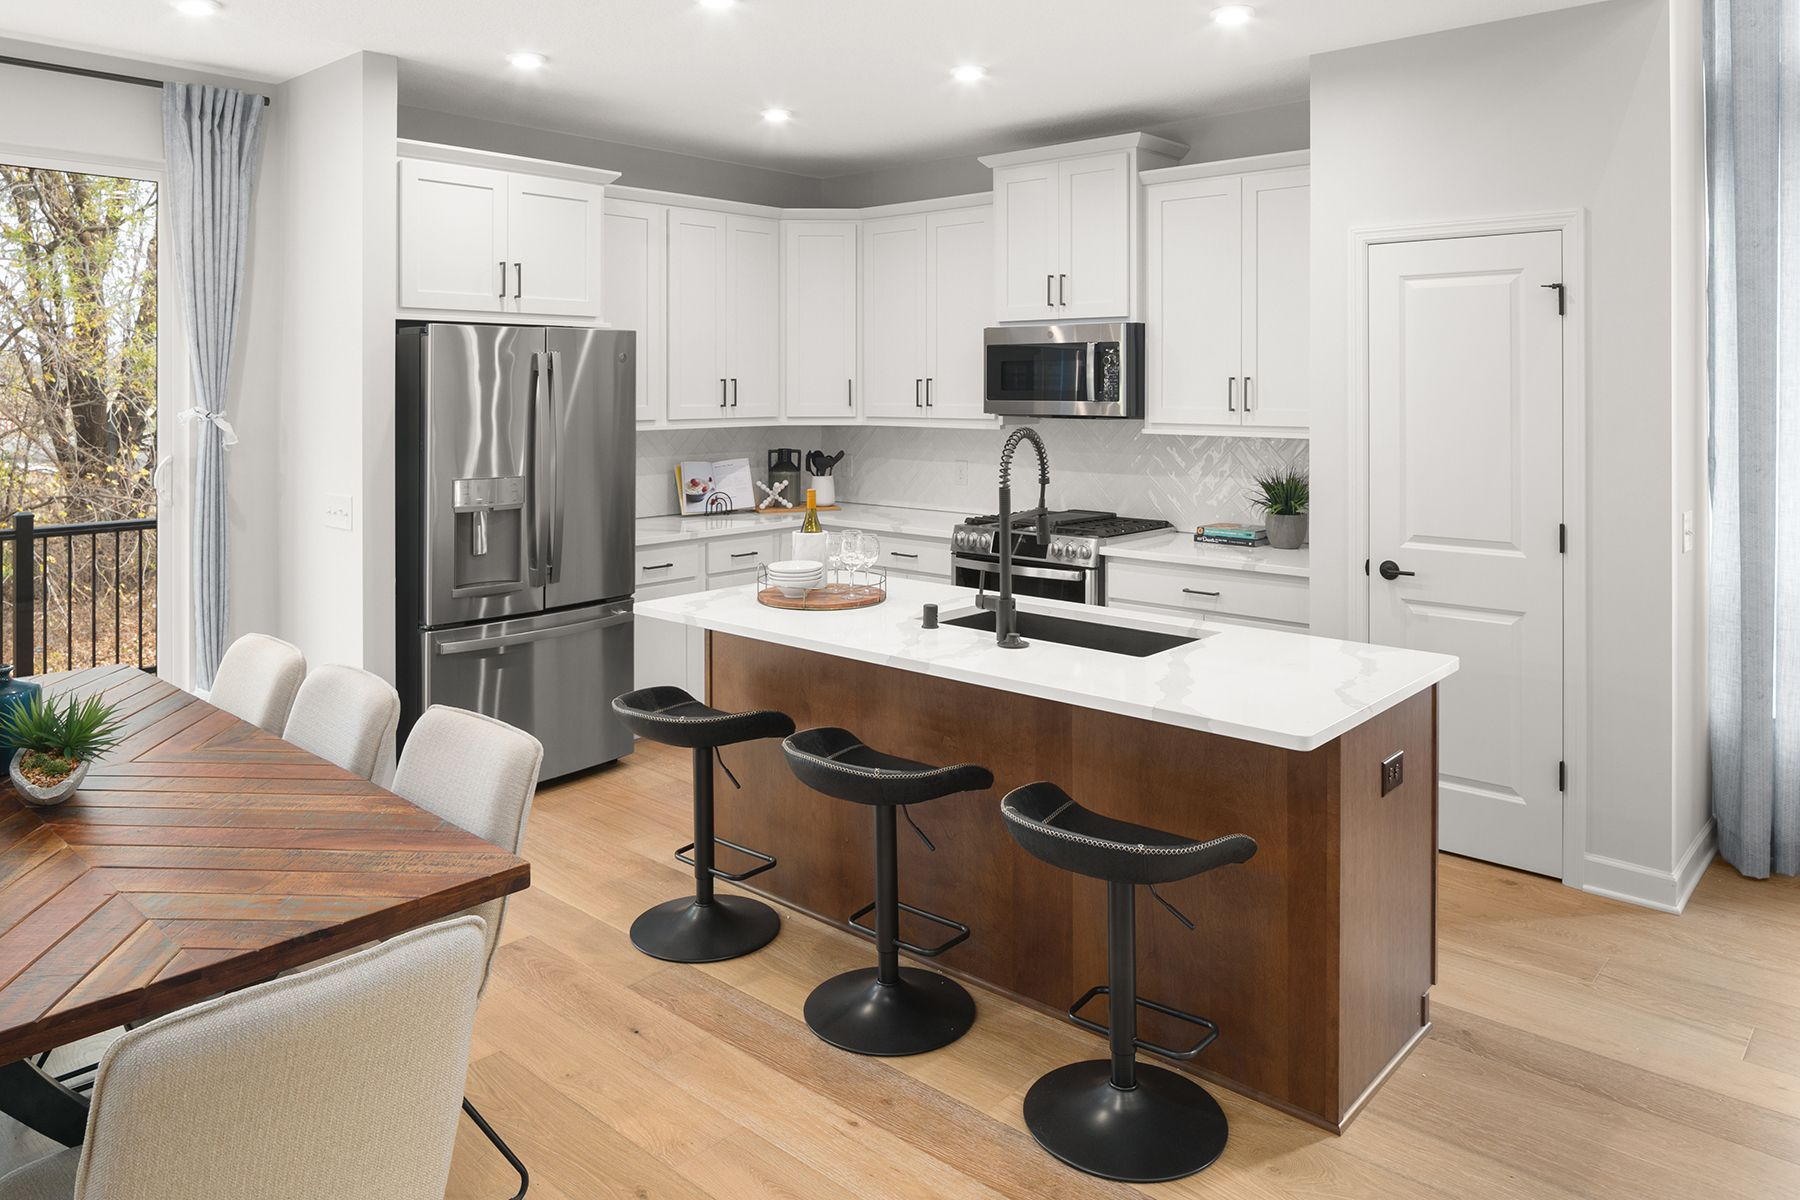 Kitchen featured in the Nokomis - 4 Unit Bldg By M/I Homes in Minneapolis-St. Paul, MN